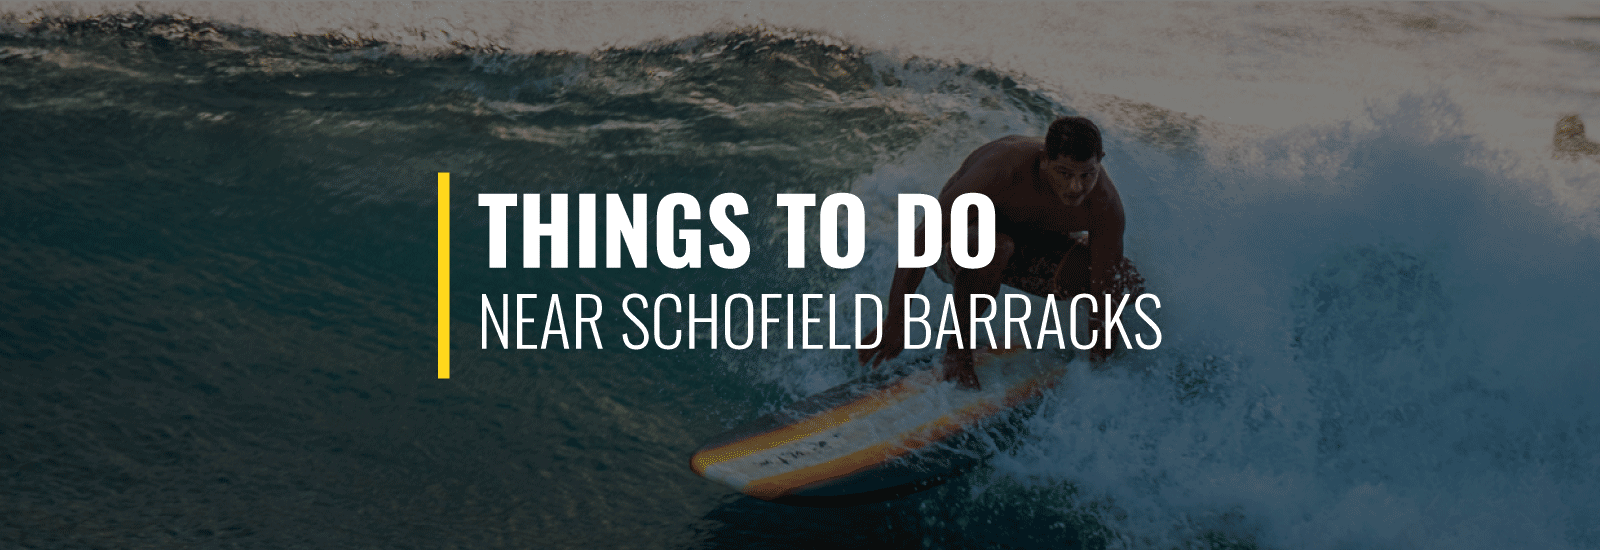 Things to Do Near Schofield